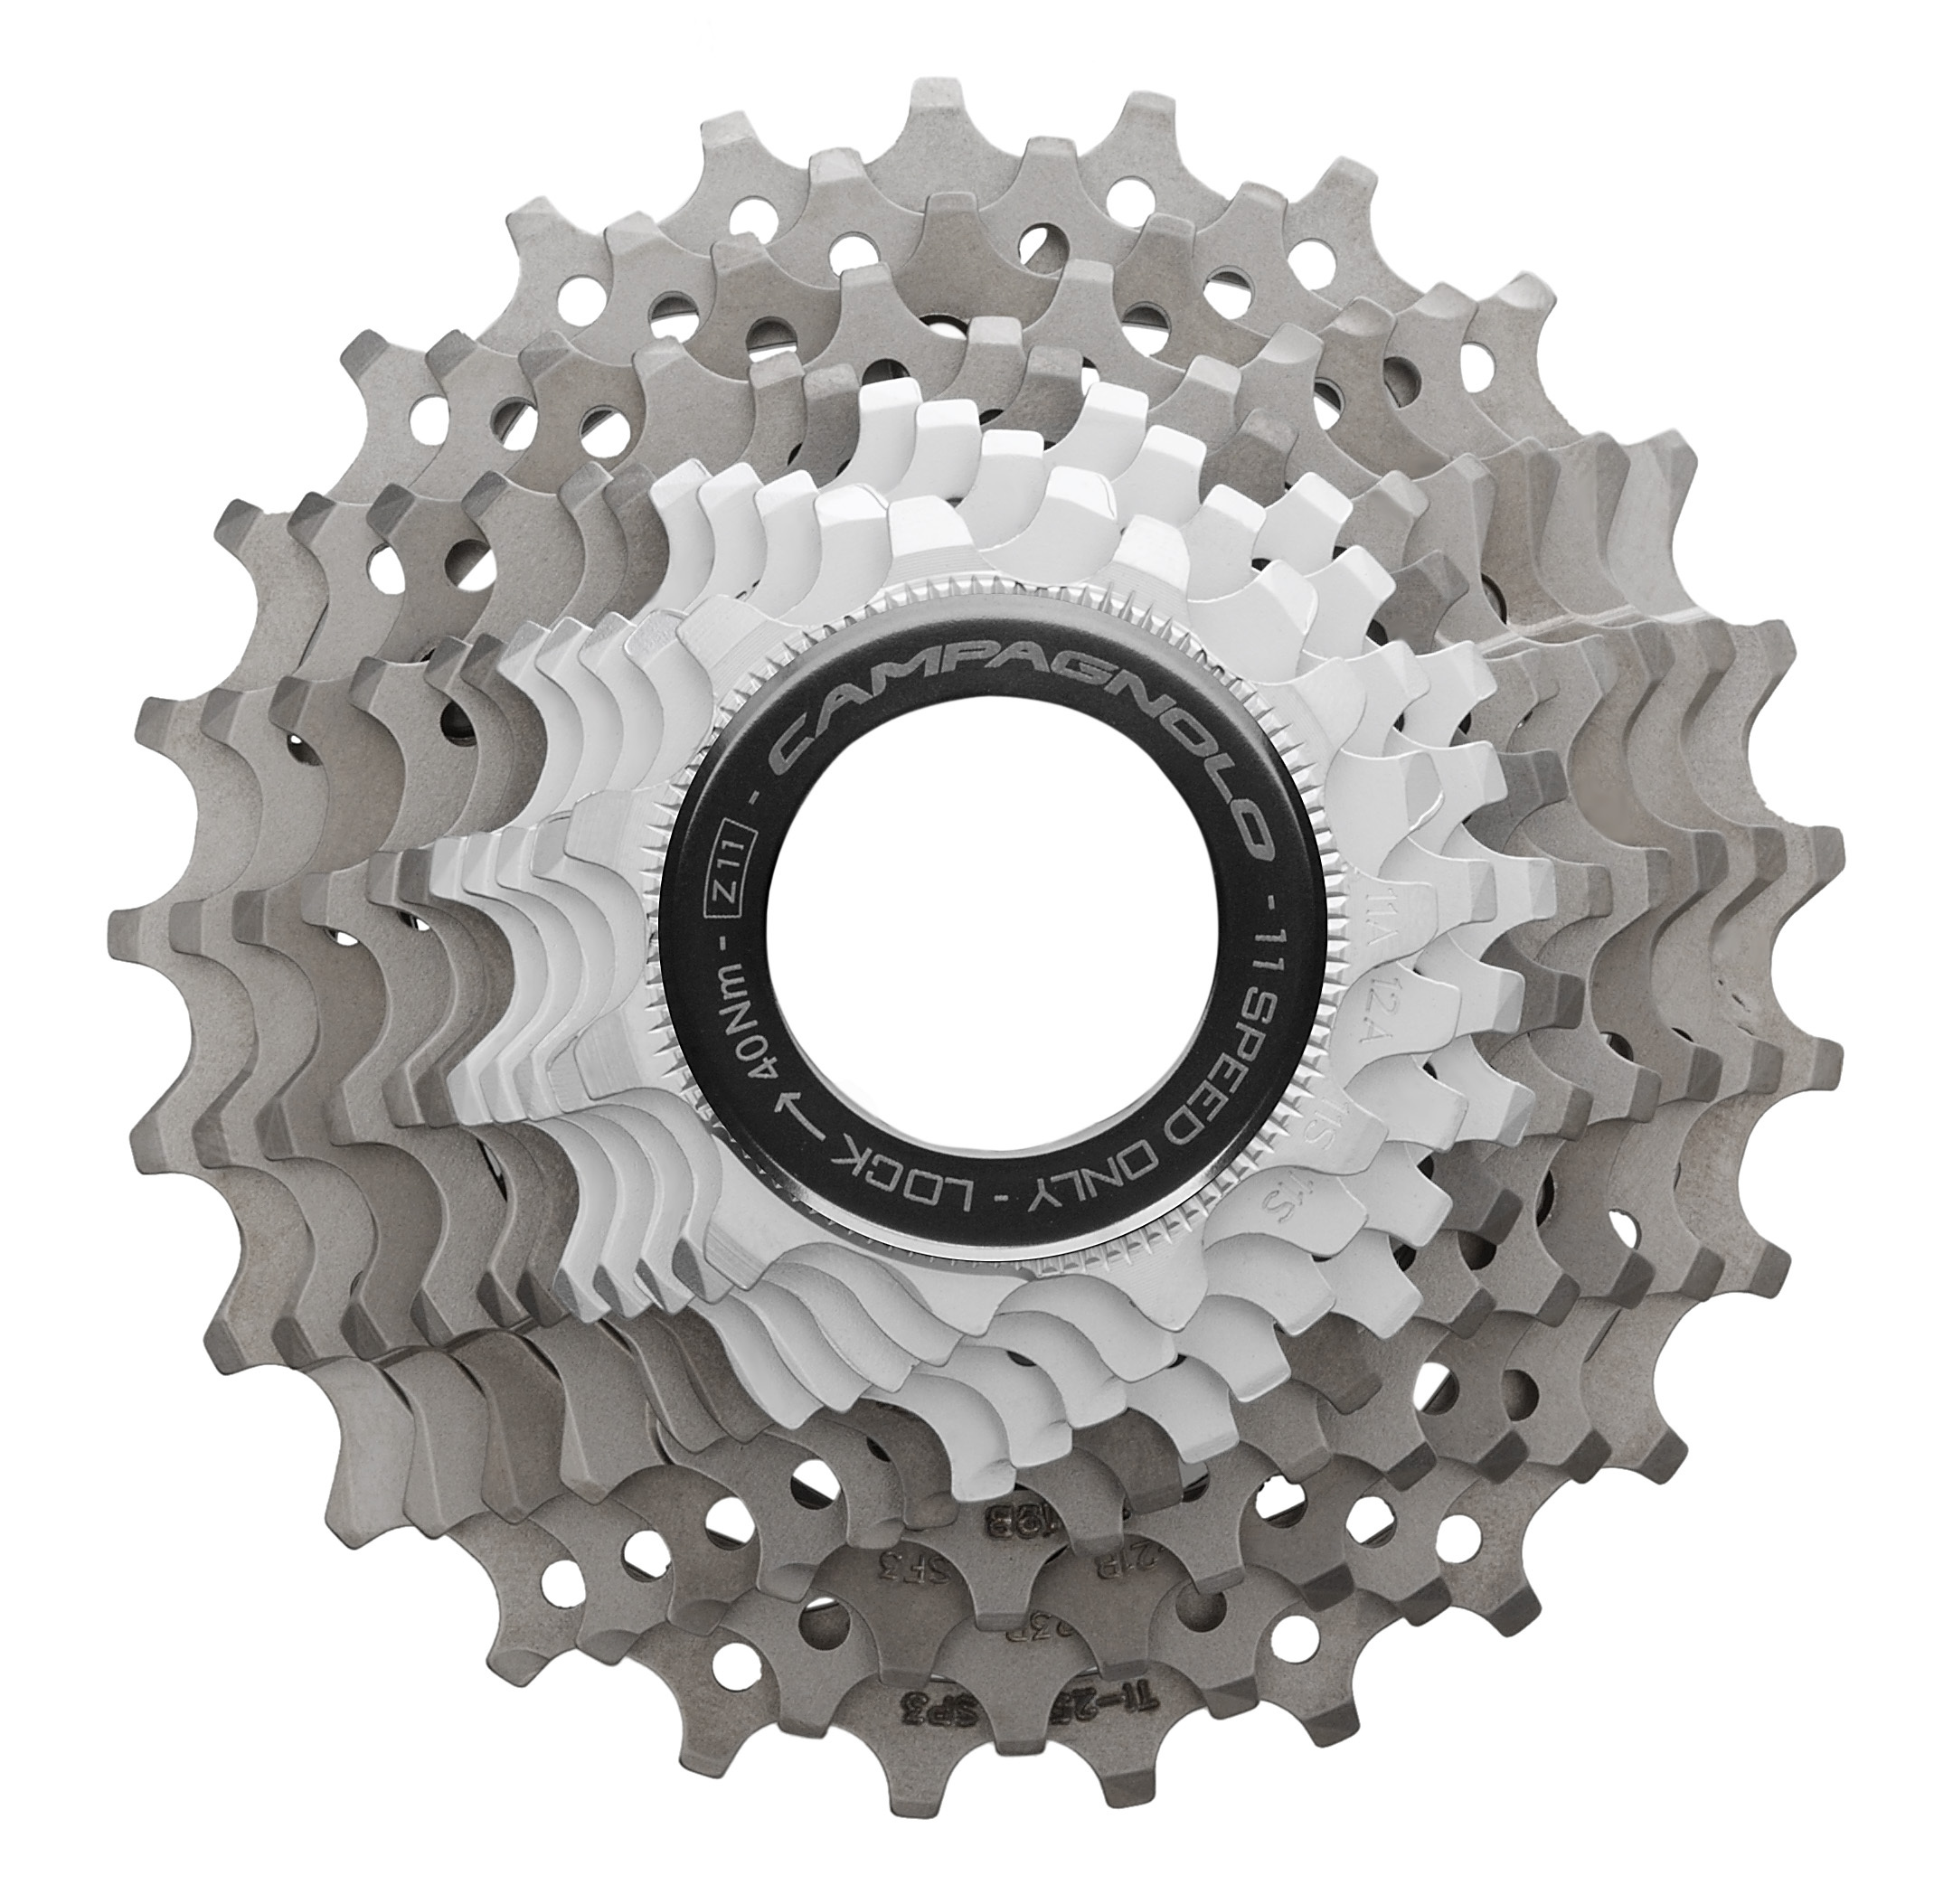 Campagnolo 11 speed